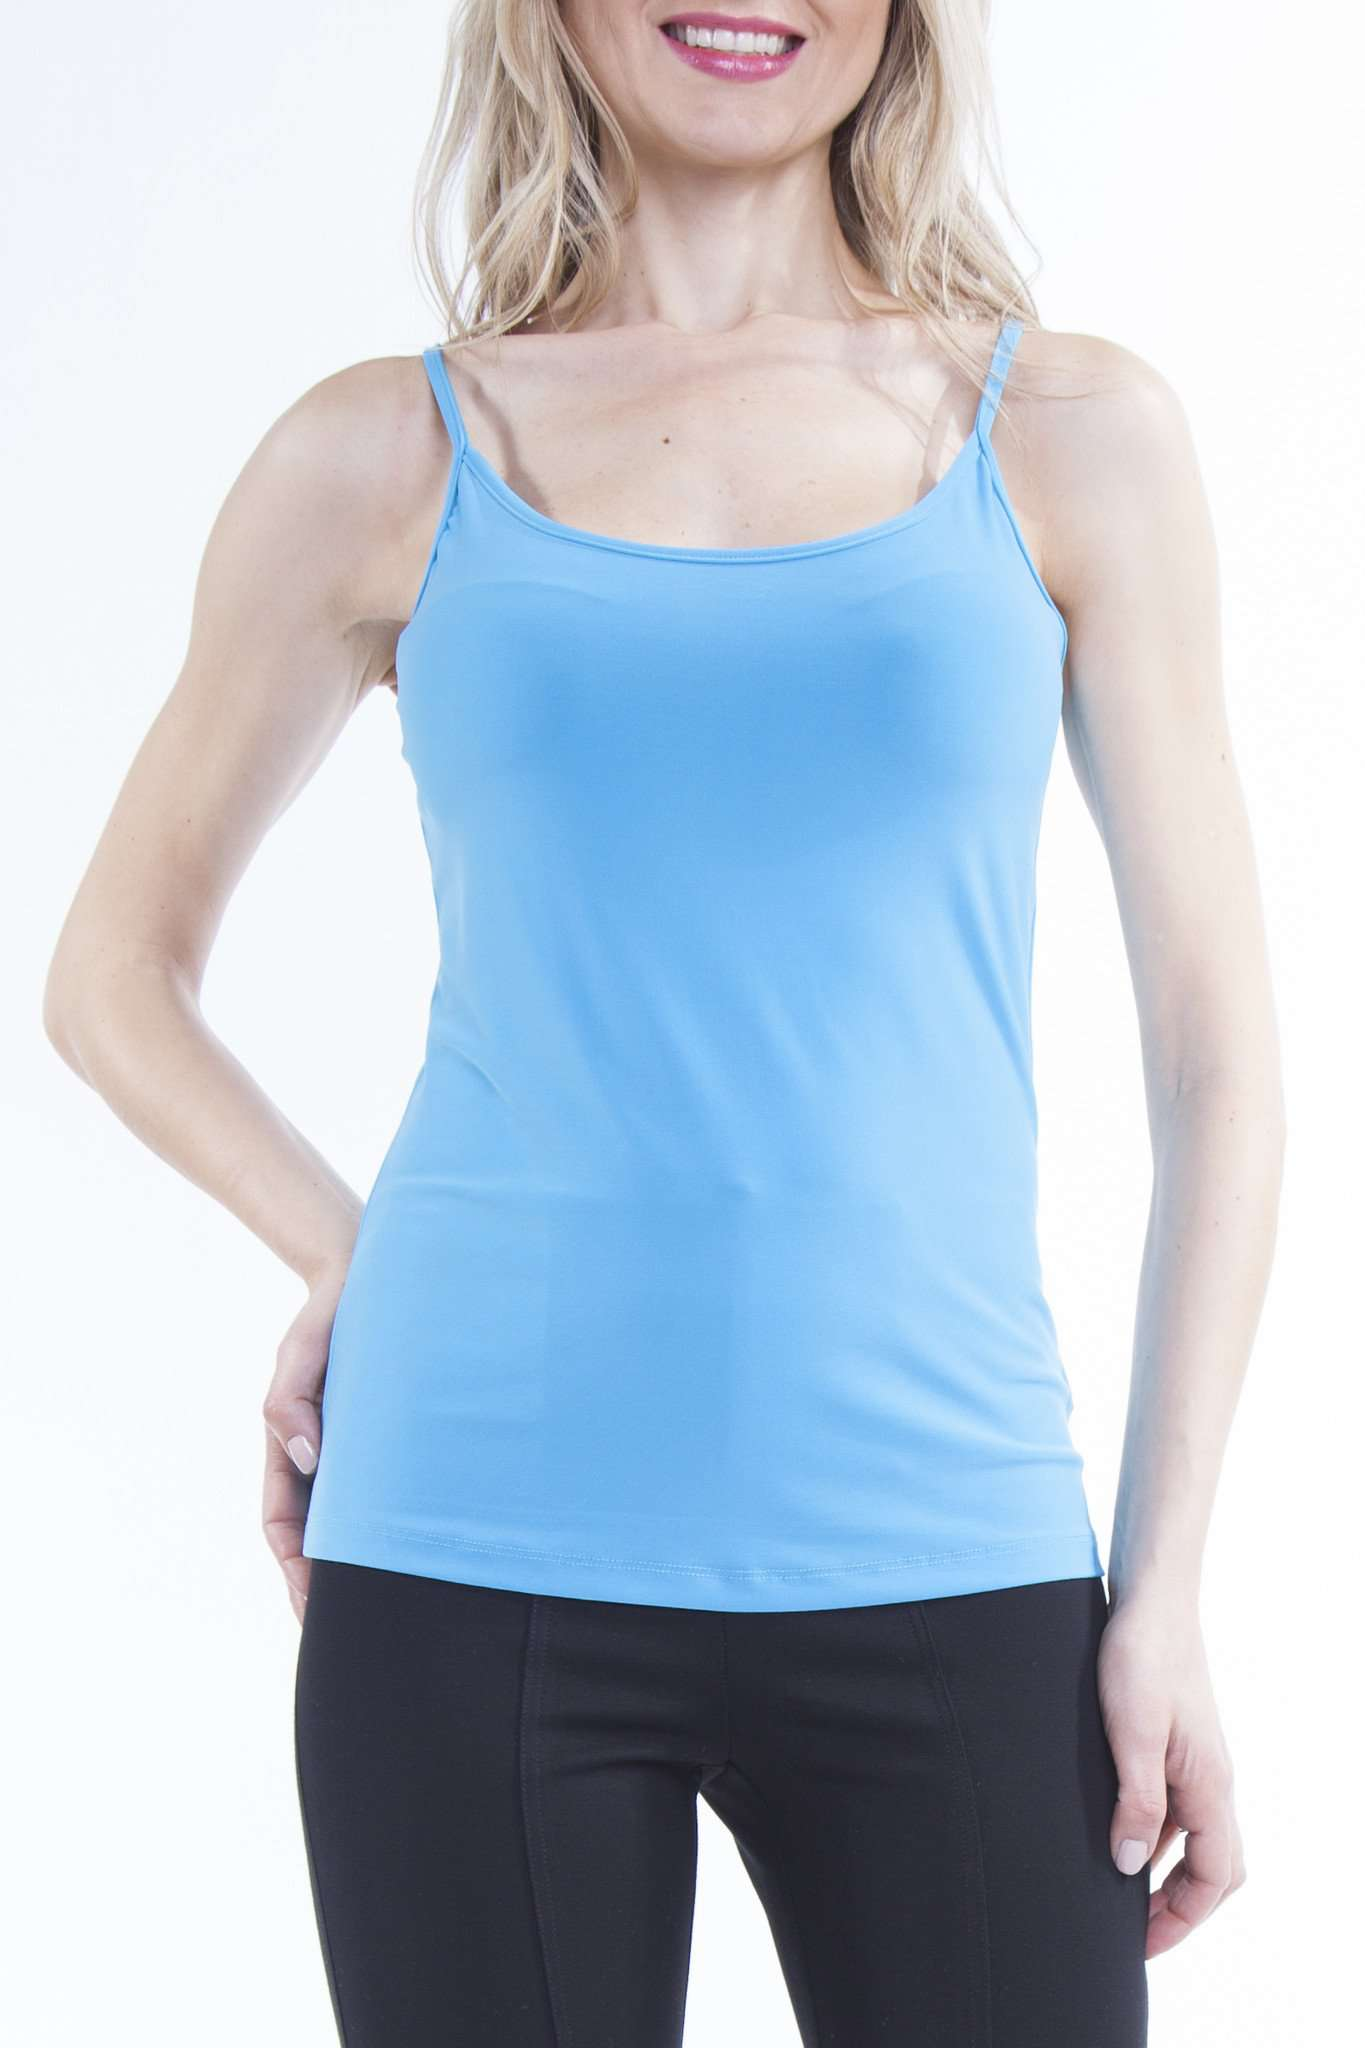 Women's Turquoise Spagetti Strap Camisole - Yvonne Marie - Yvonne Marie